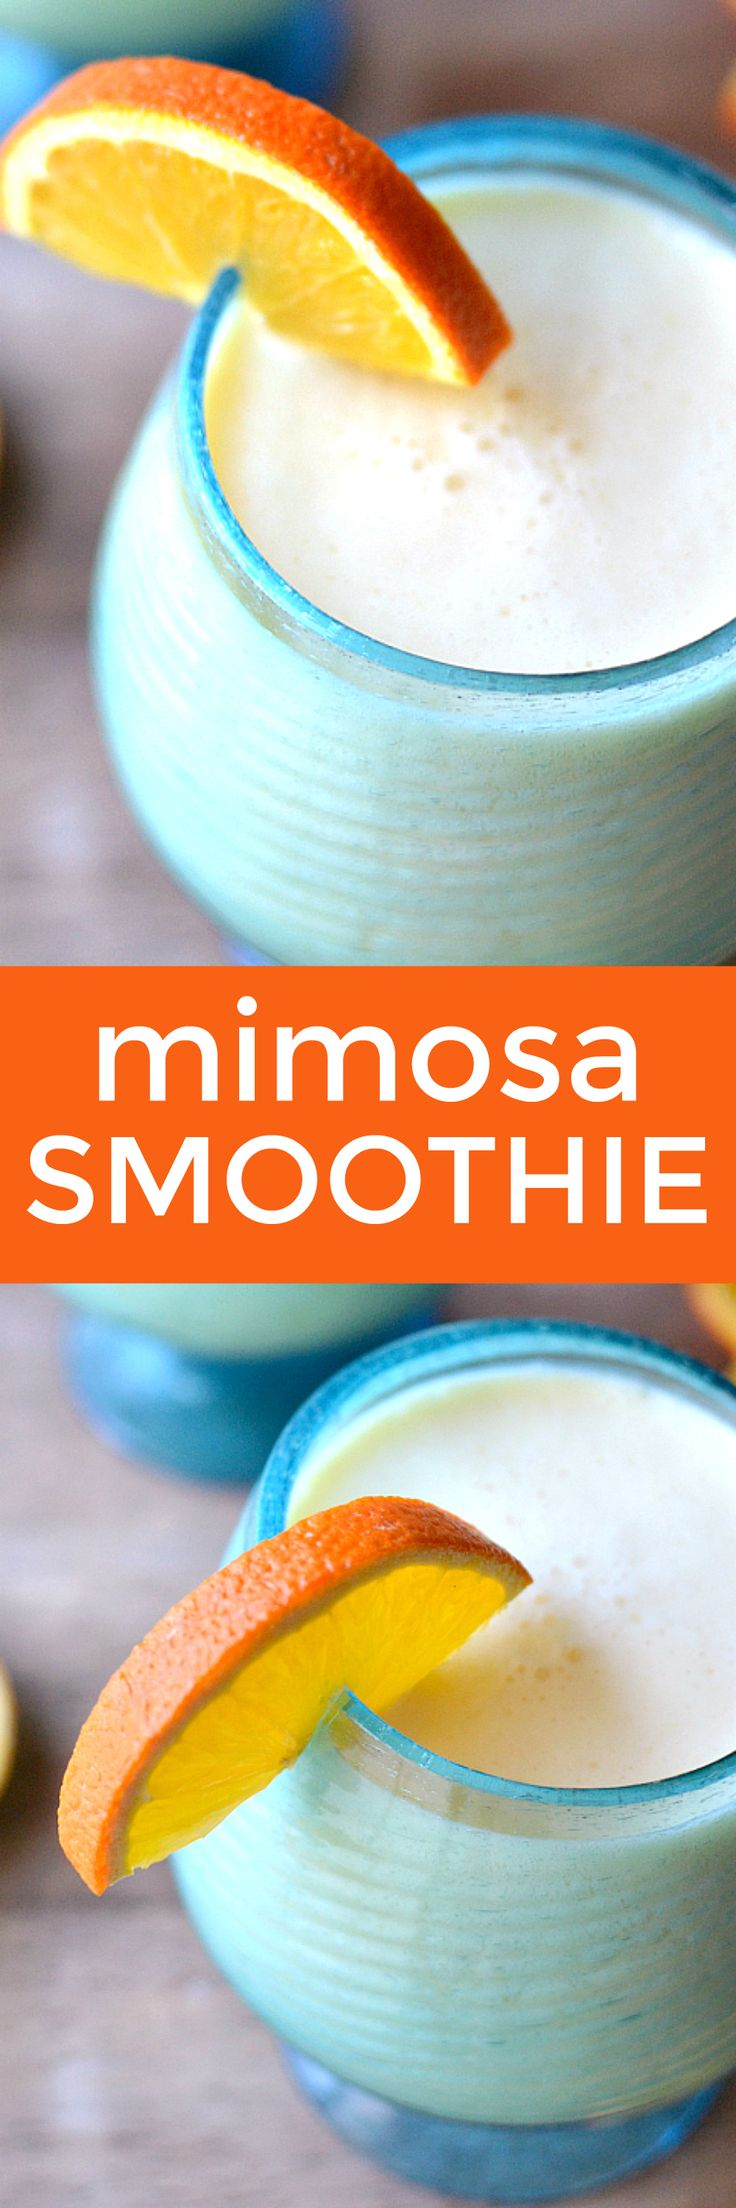 This Mimosa Smoothie combines the delicious flavors of your favorite breakfast drink with creamy vanilla yogurt in an amazing smoothie that's fit for a celebration!